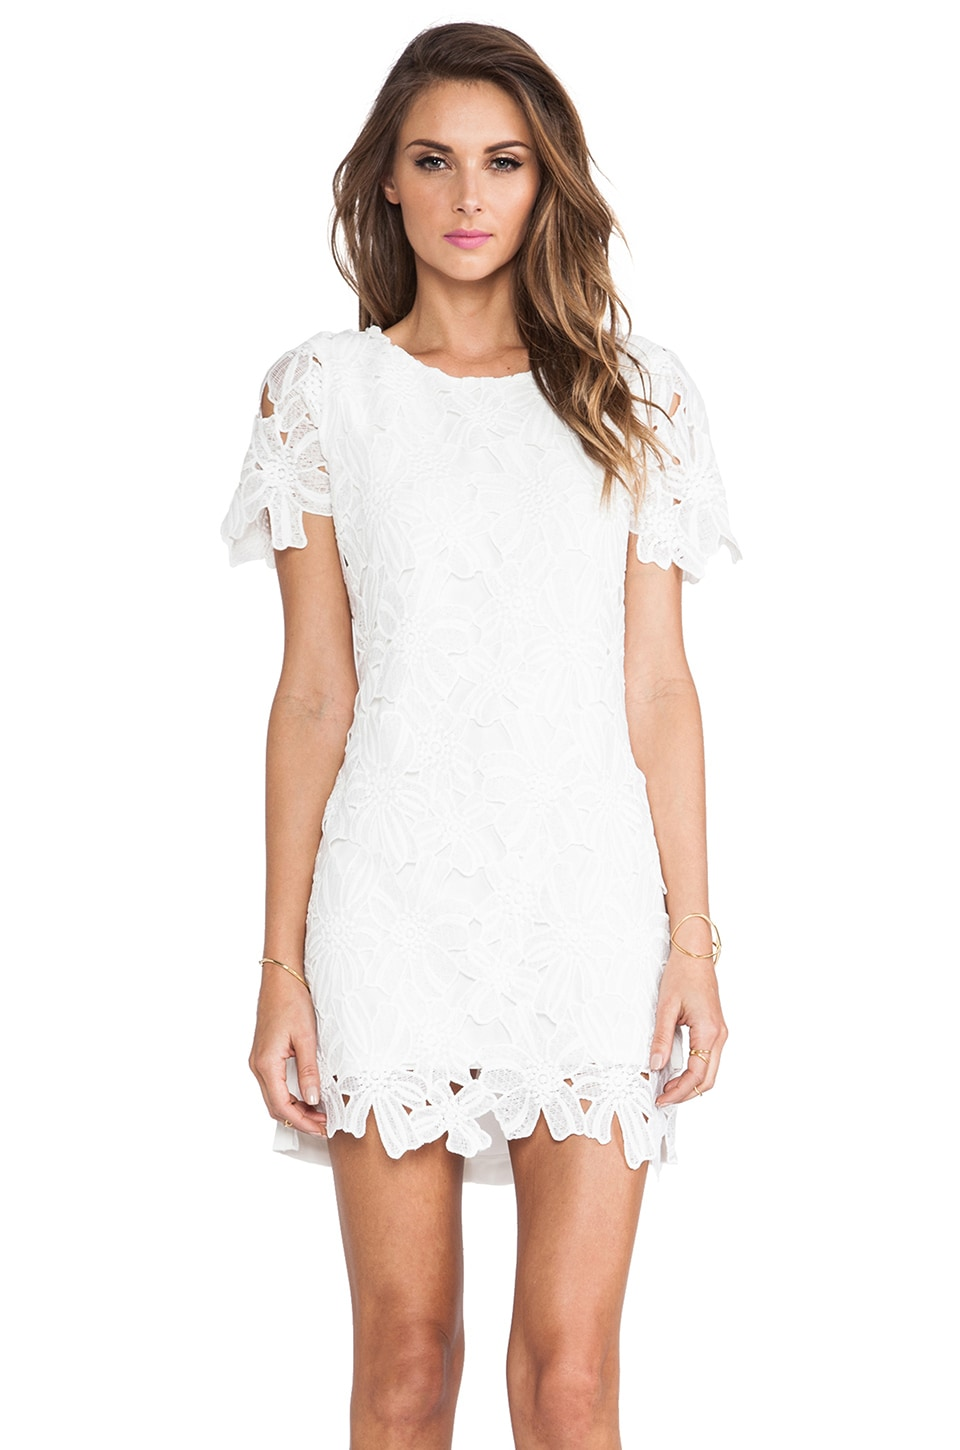 Joa flower lace dress in white revolve joa flower lace dress in white mightylinksfo